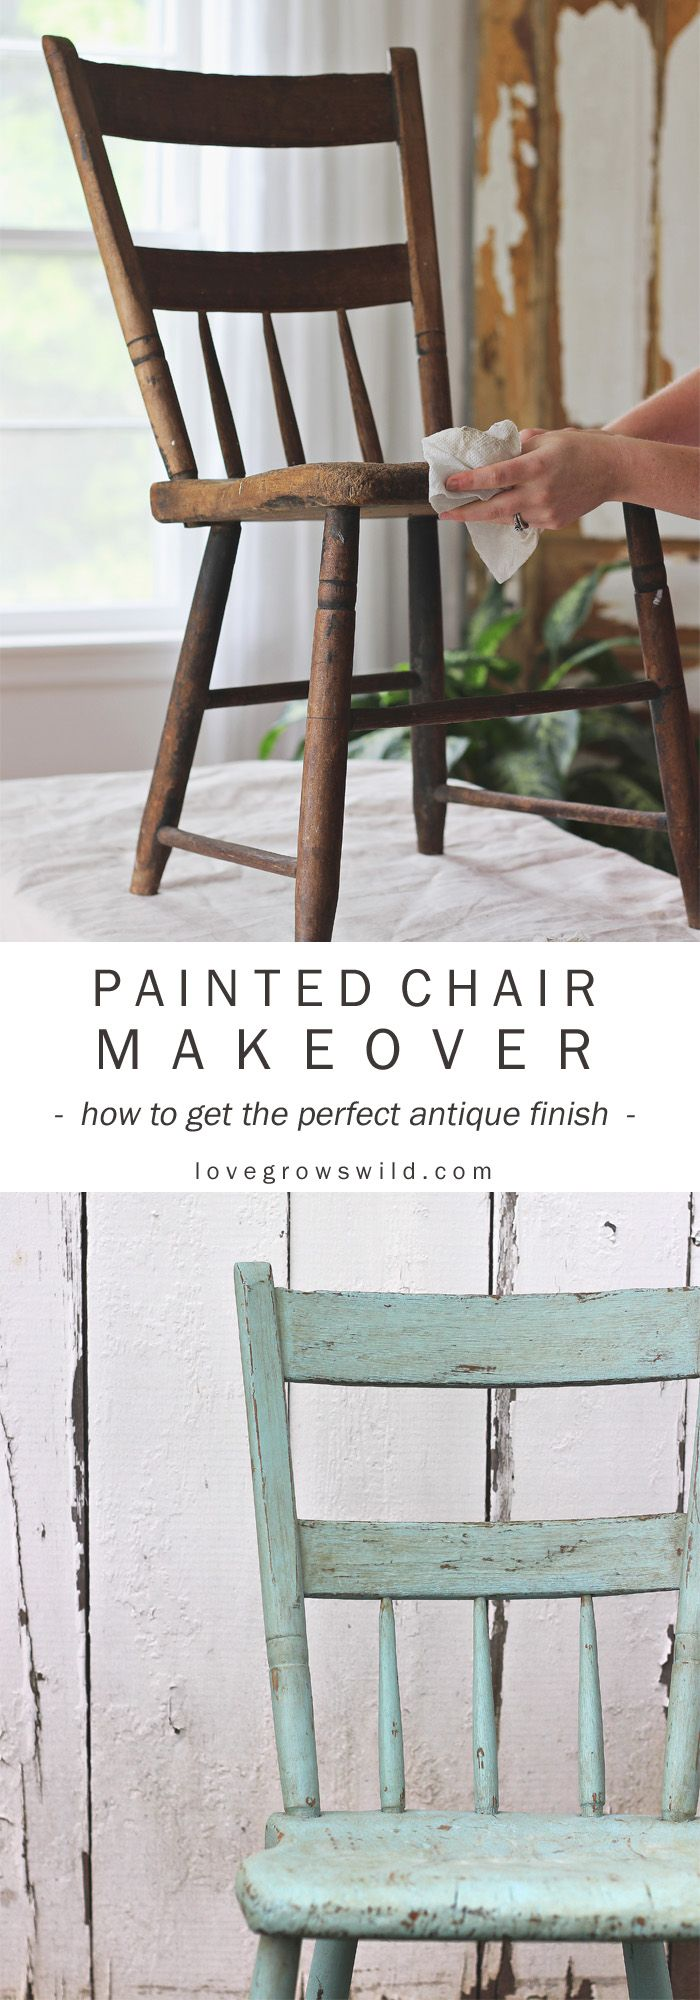 Step-by-step instructions for painting furniture in a gorgeous antique finish! S...